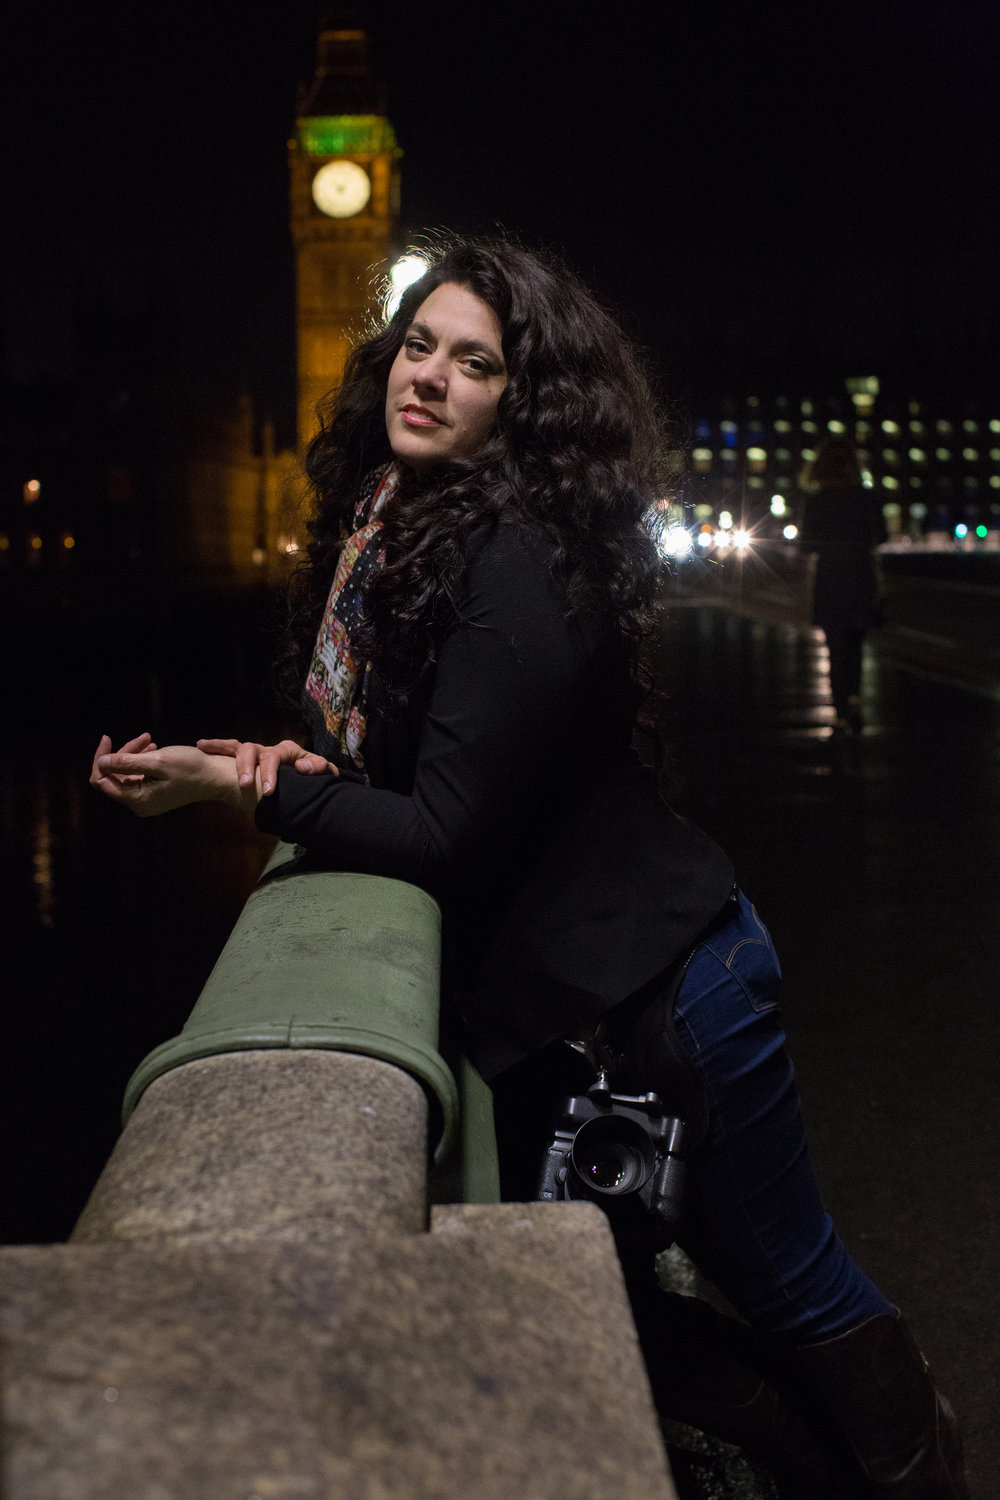 Cat Ford-Coates, Portrait Photographer.   Image courtesy of Corinne Hunsicker of Silverbox Creative Studios taken on the Westminster Bridge in London 2017